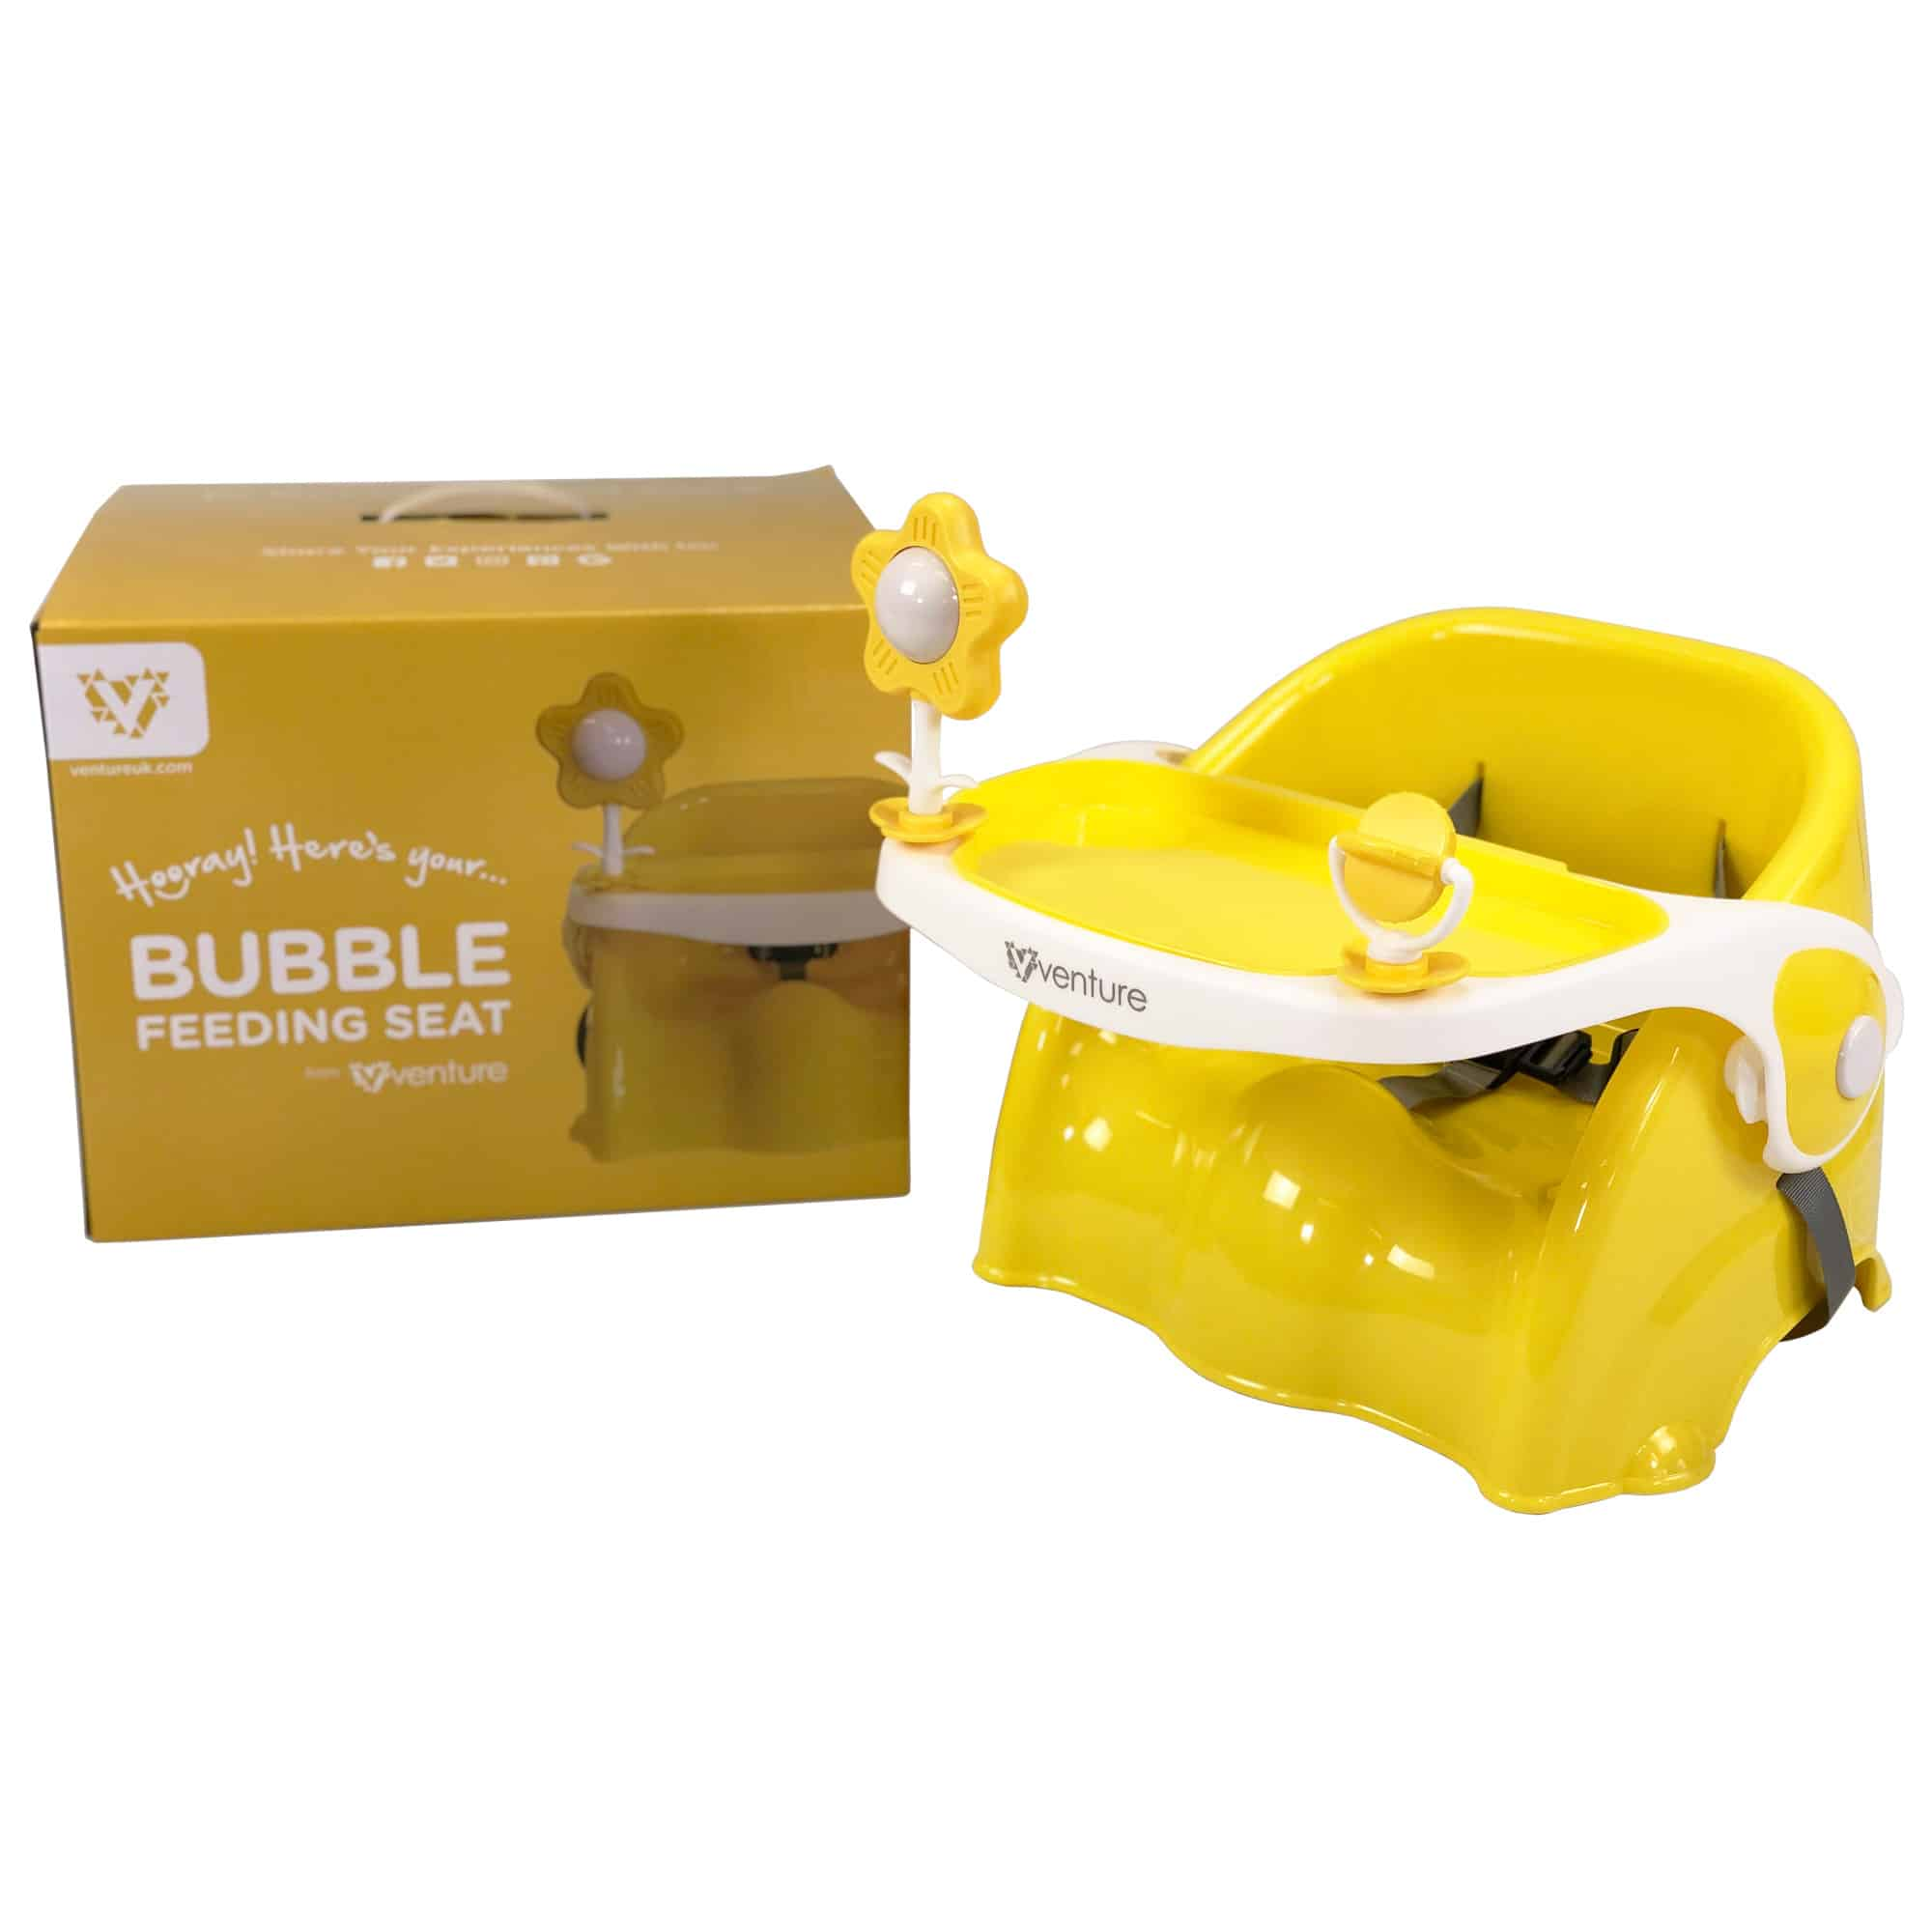 Venture Bubble booster seat in Sunny yellow with box